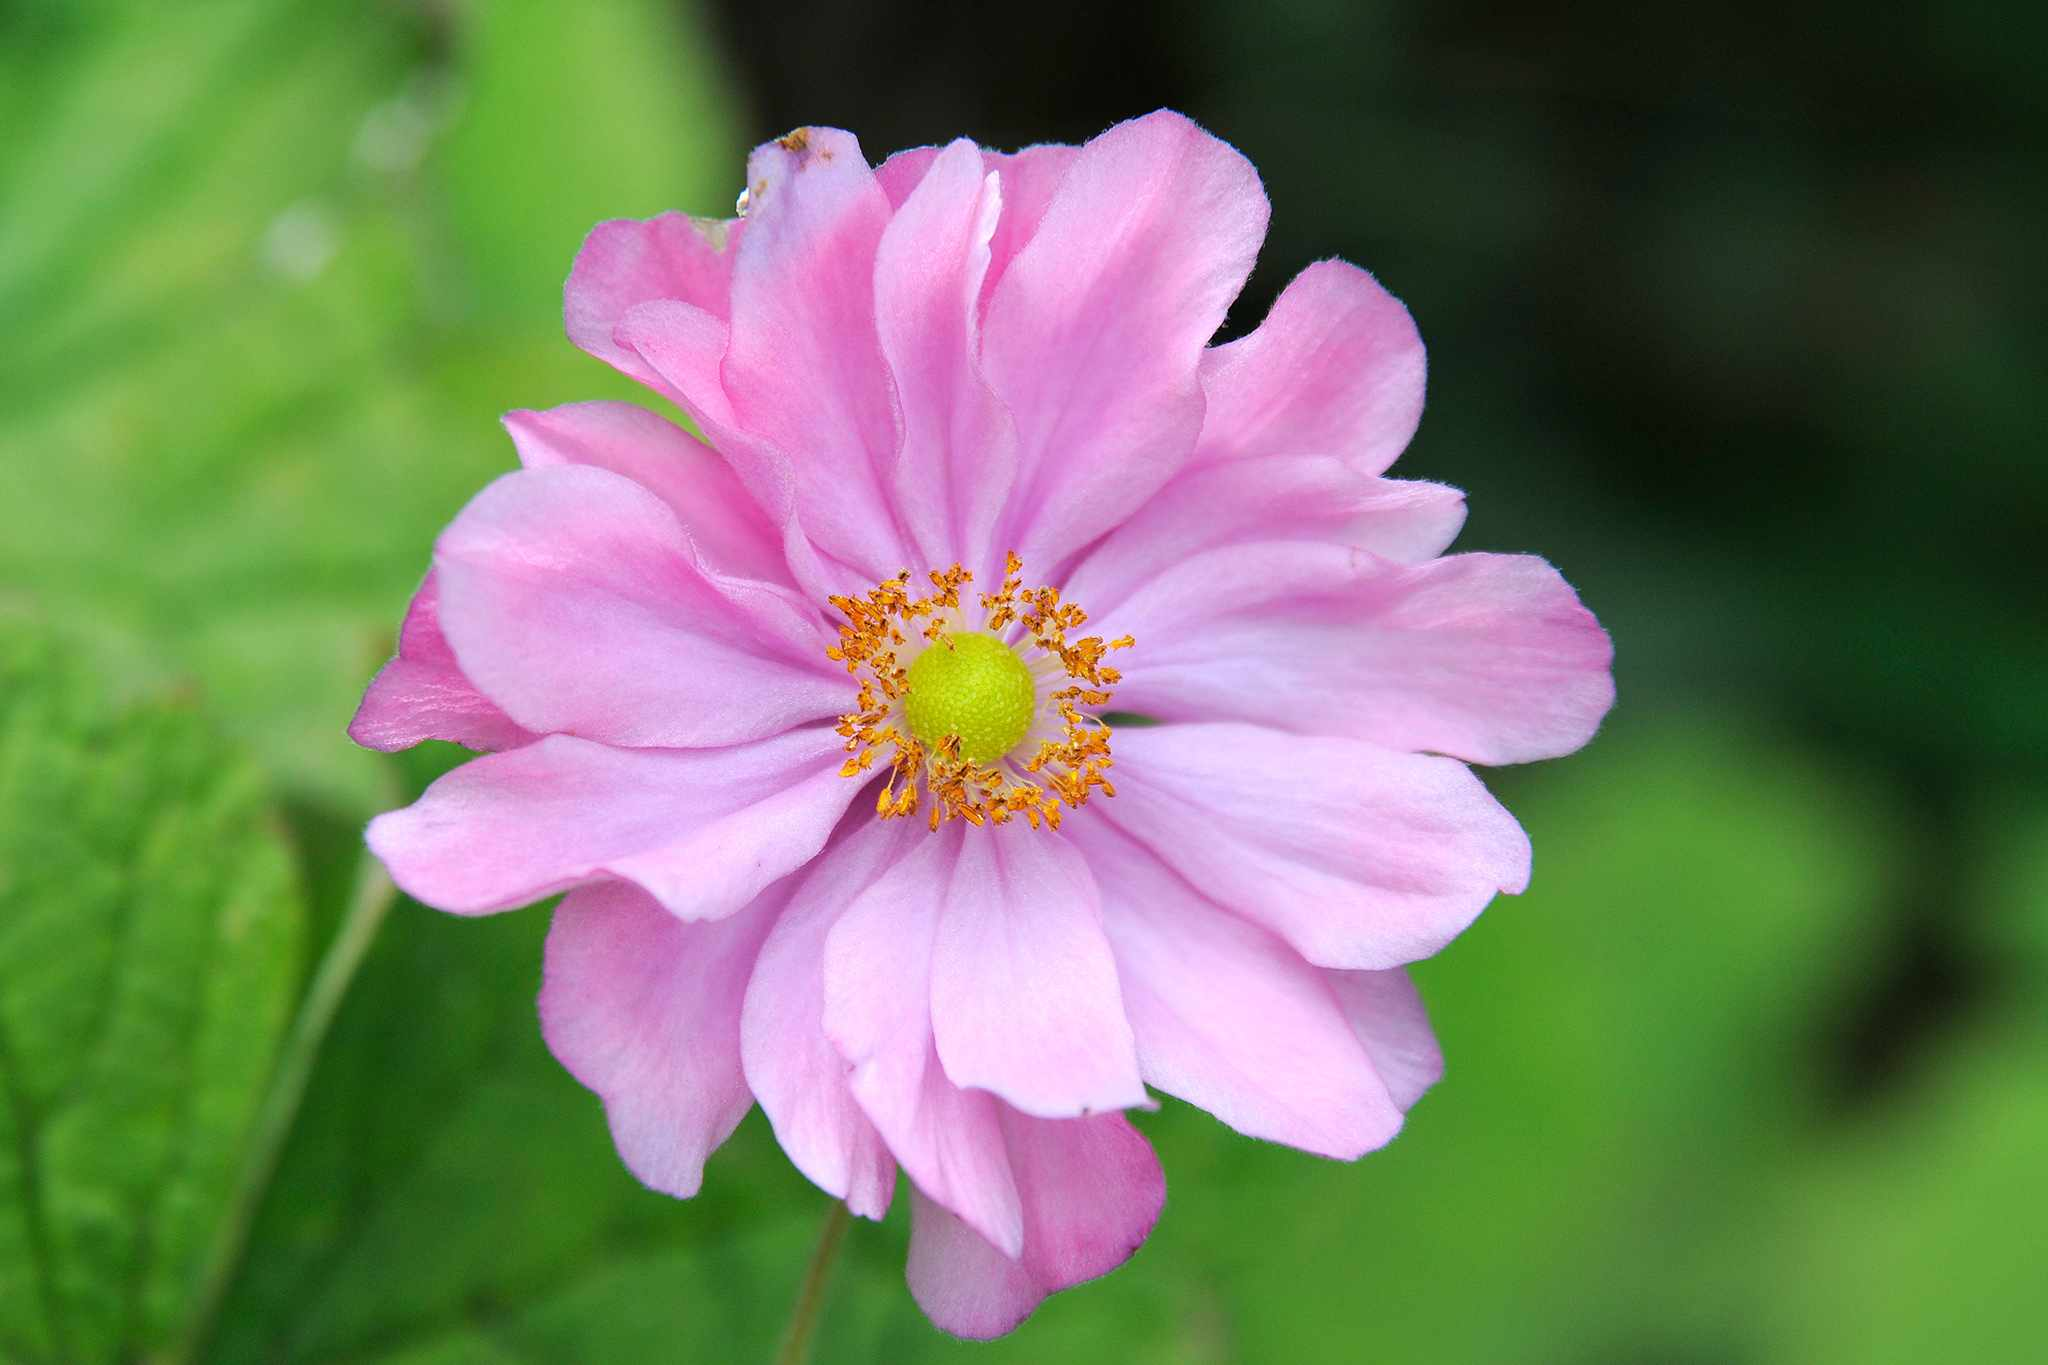 Pink Japanese anemone flower